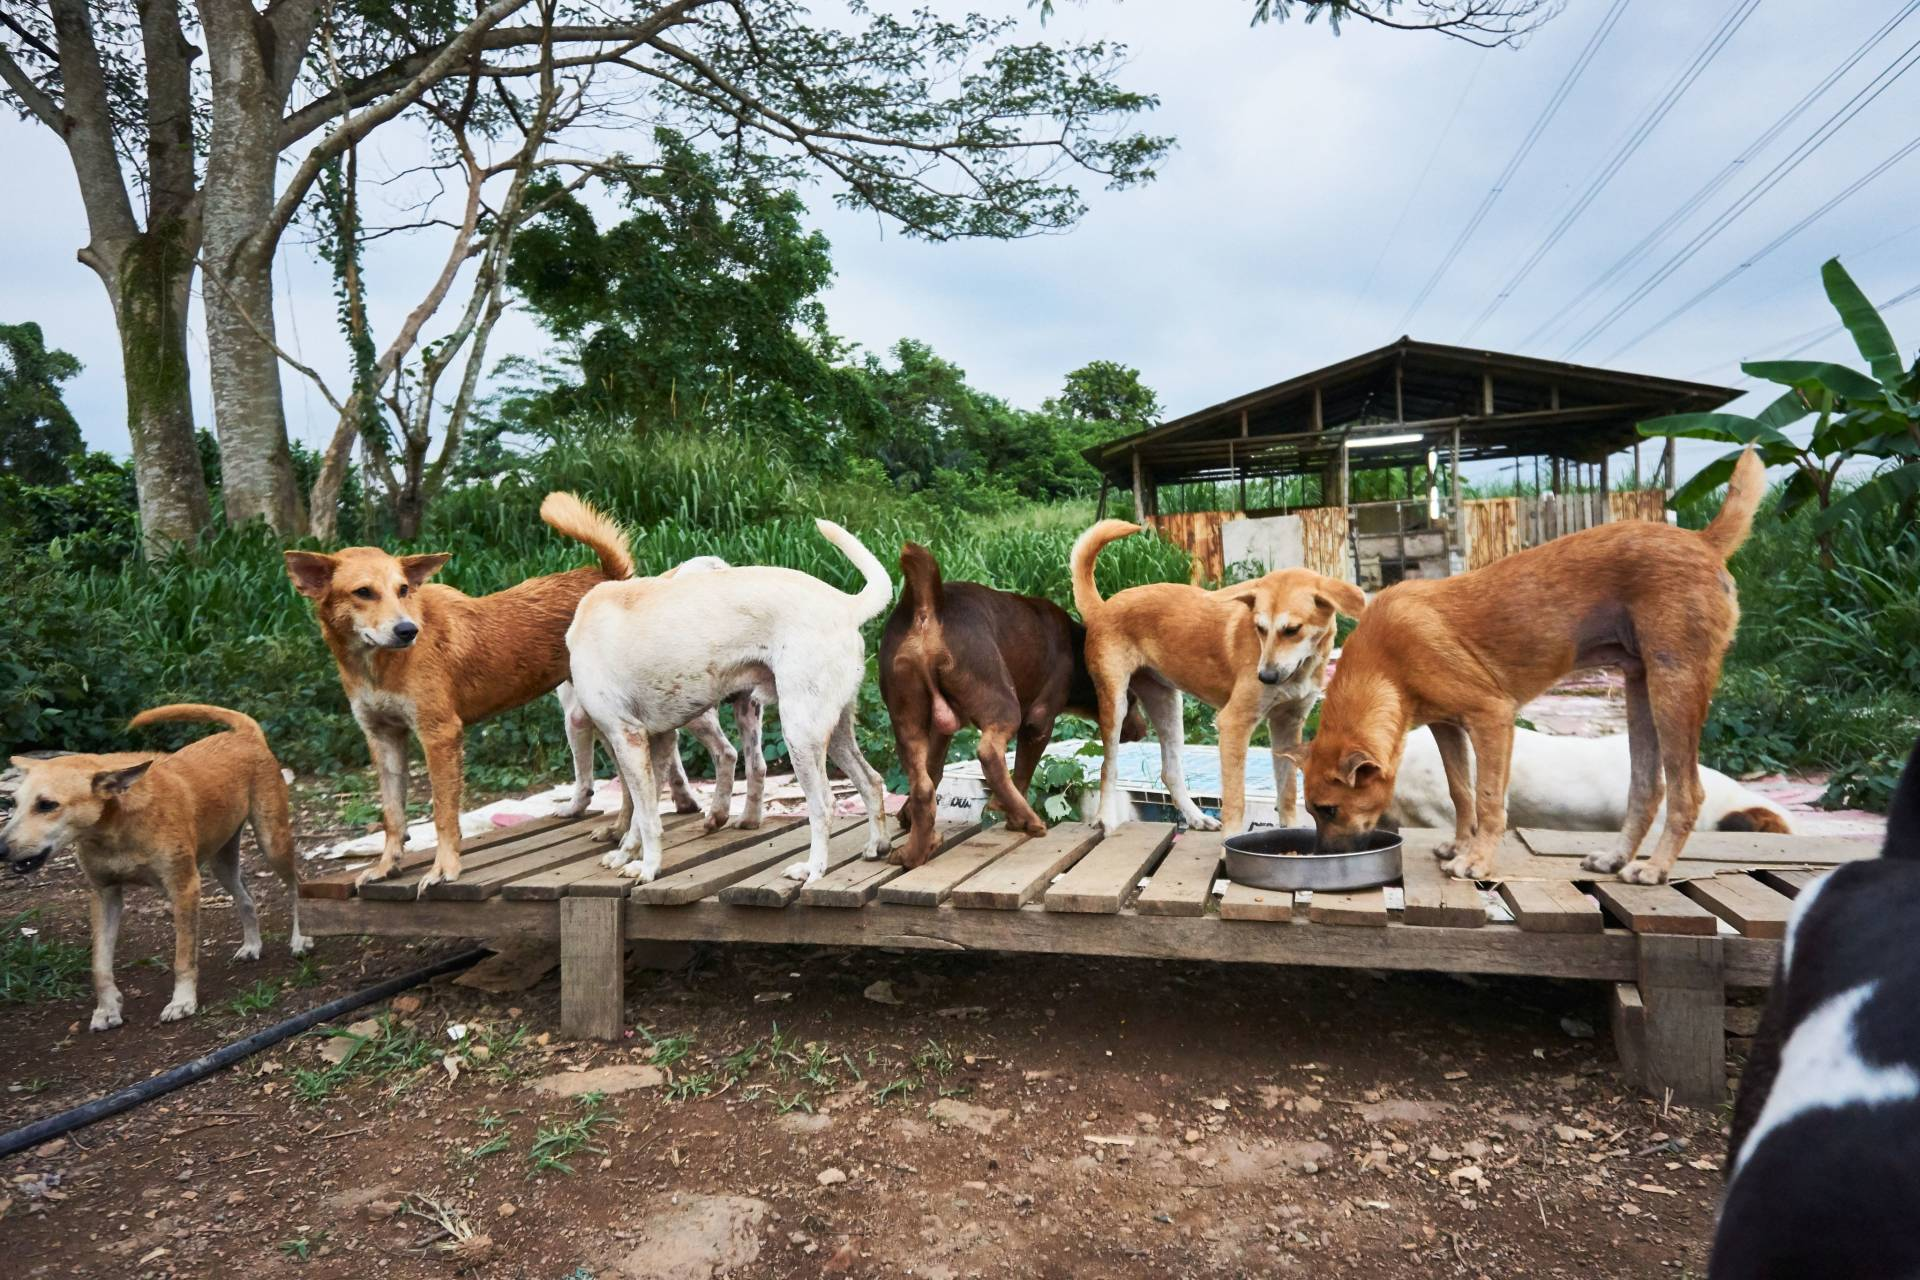 Some of the 120 dogs that are taken care of by Puppy's Loving Home in Serendah, Hulu Selangor.